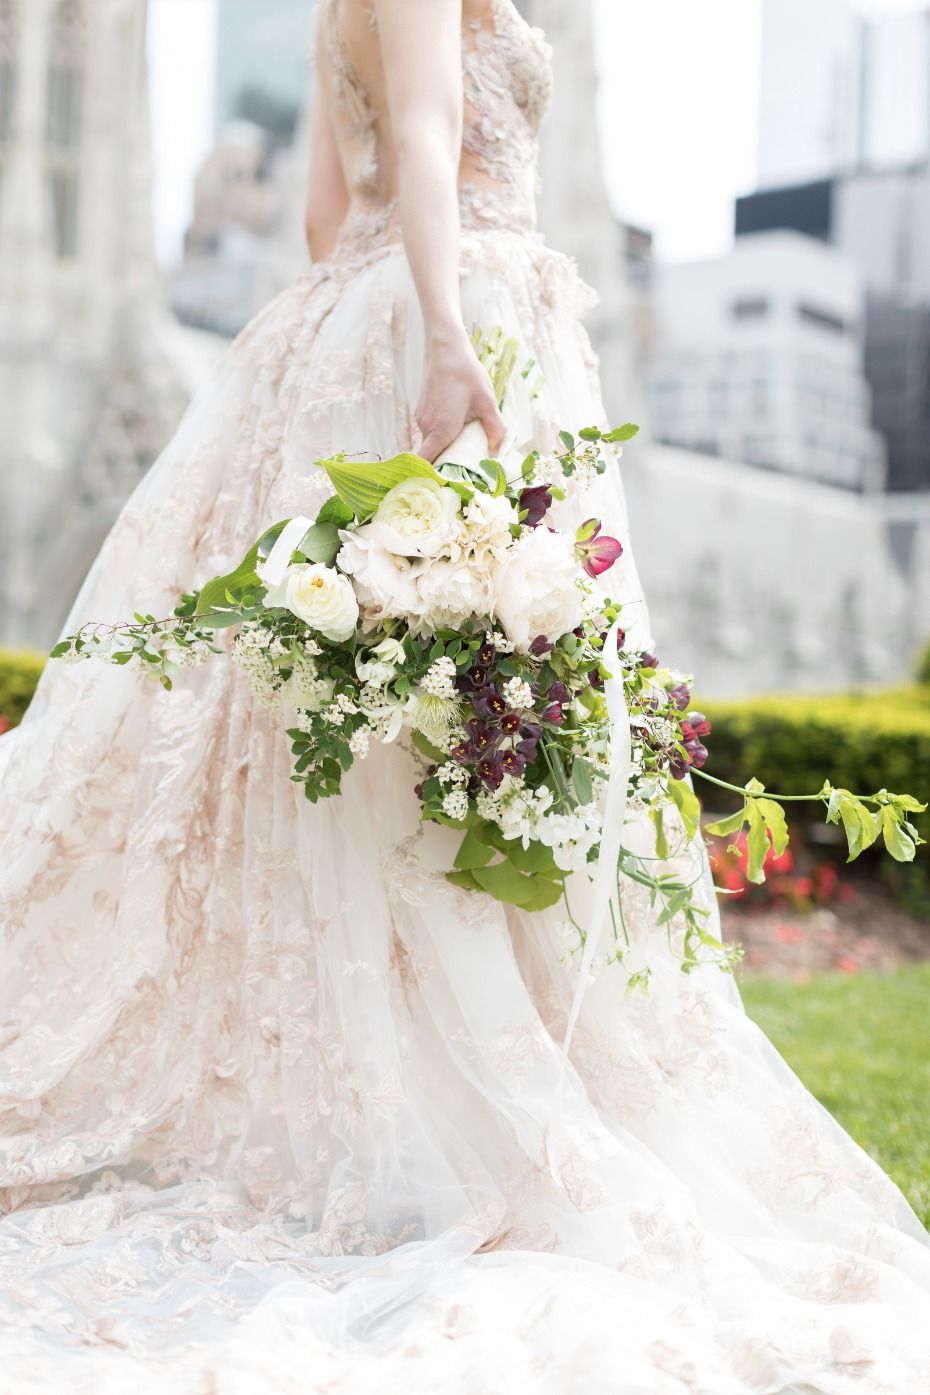 This bouquet is to die for